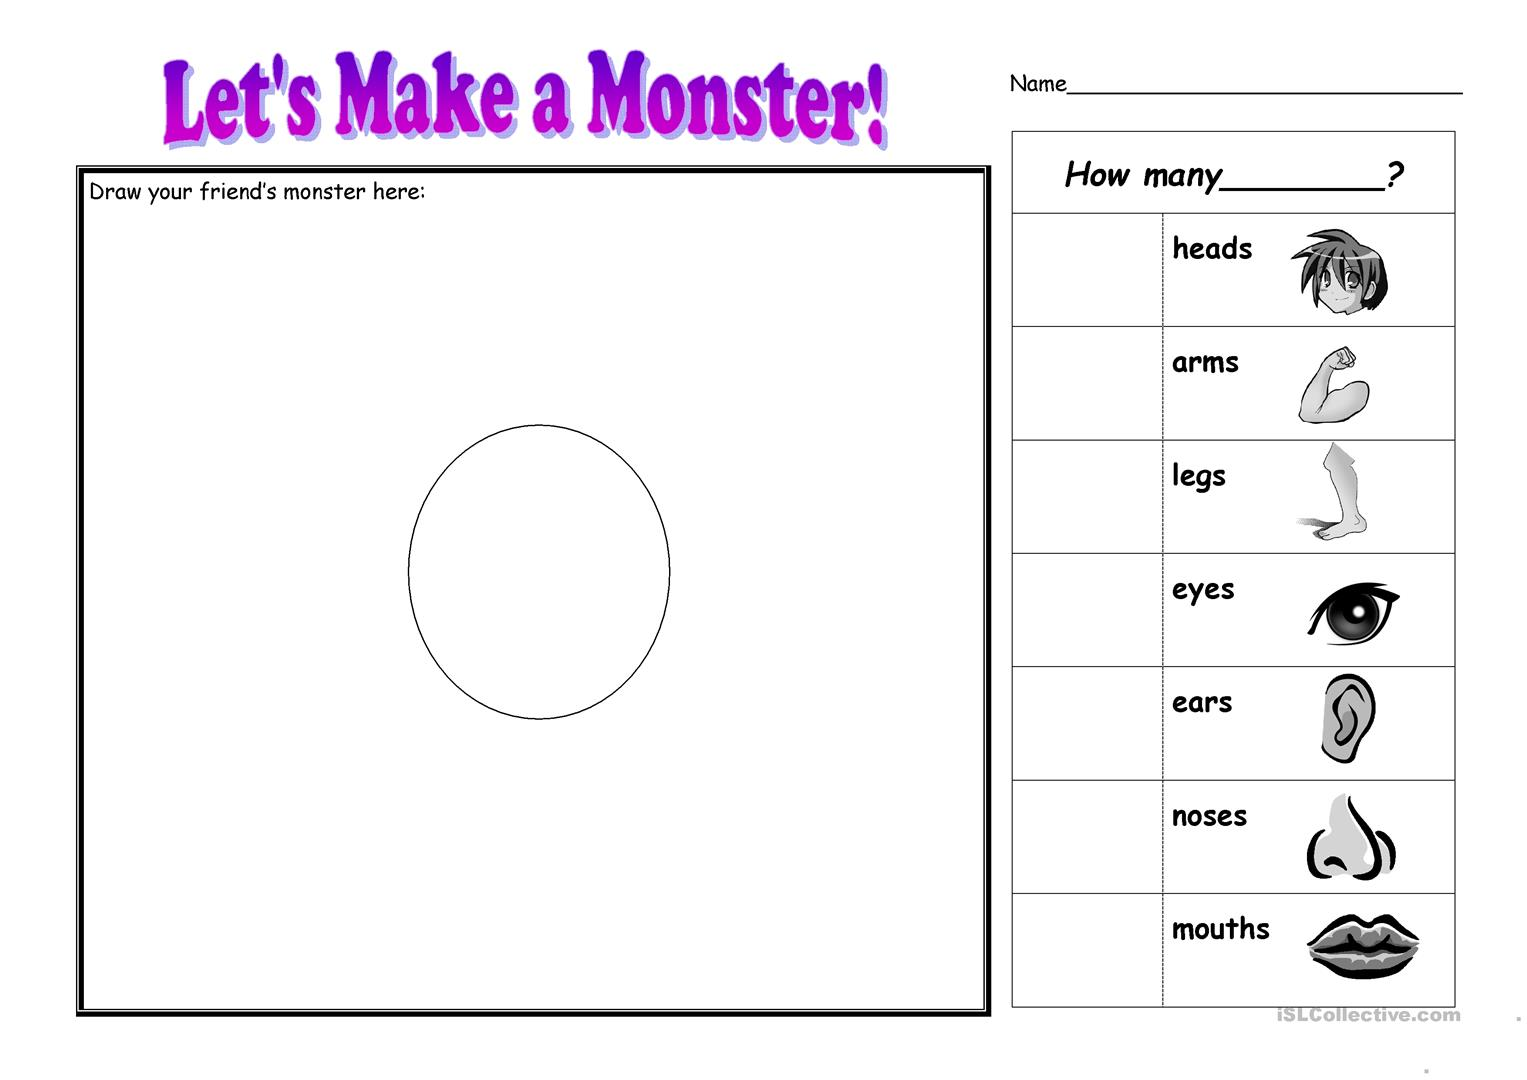 Make A Monster Worksheet